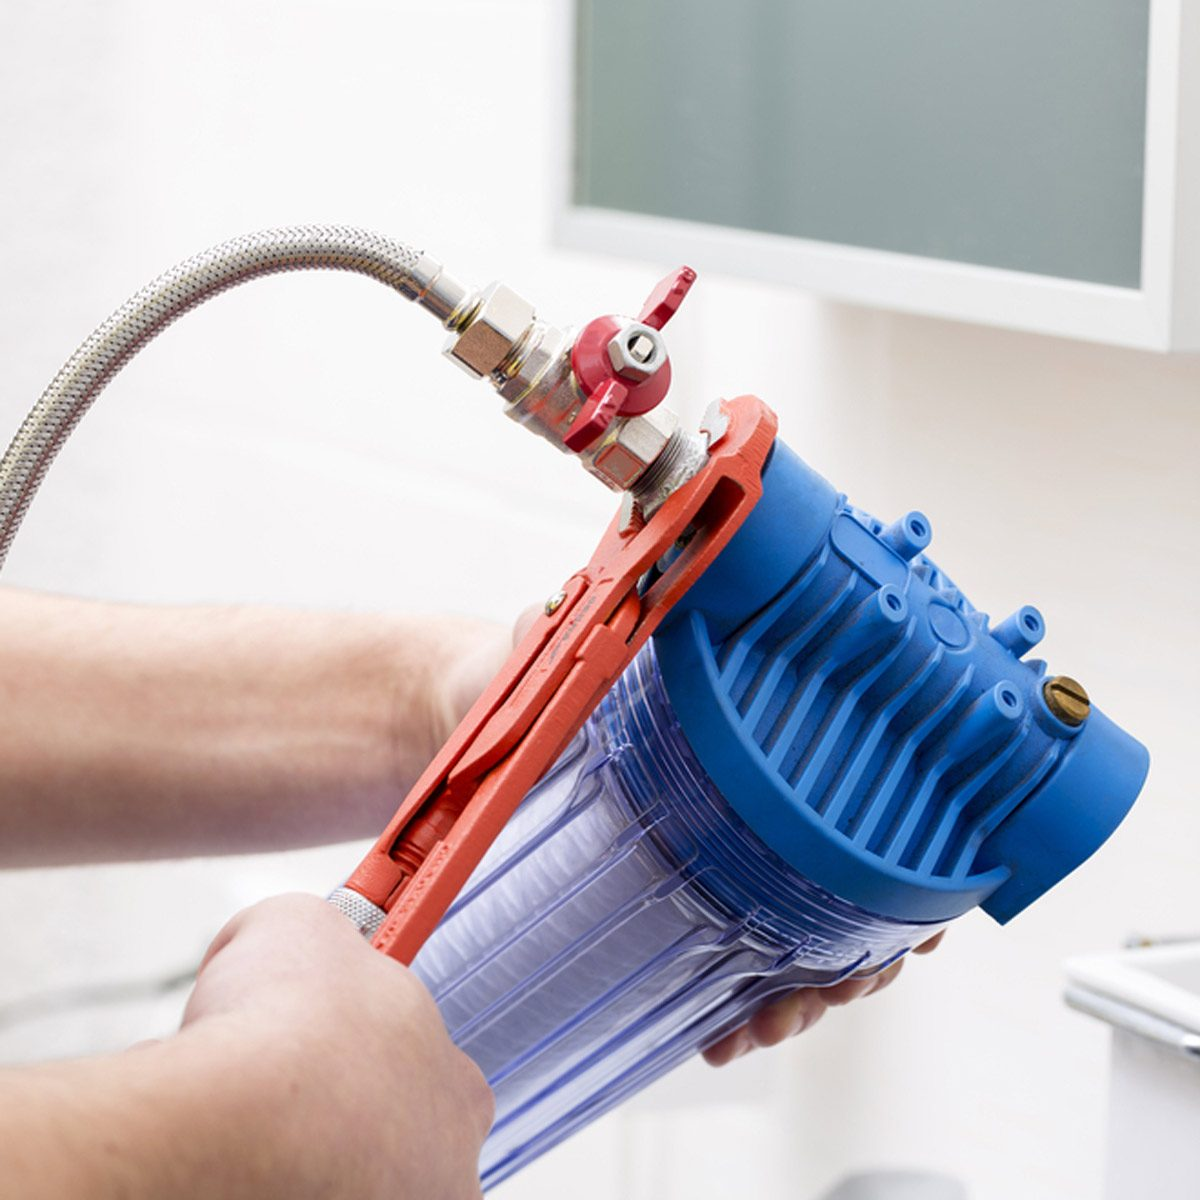 dfh34_shutterstock_399351790 water filtration system